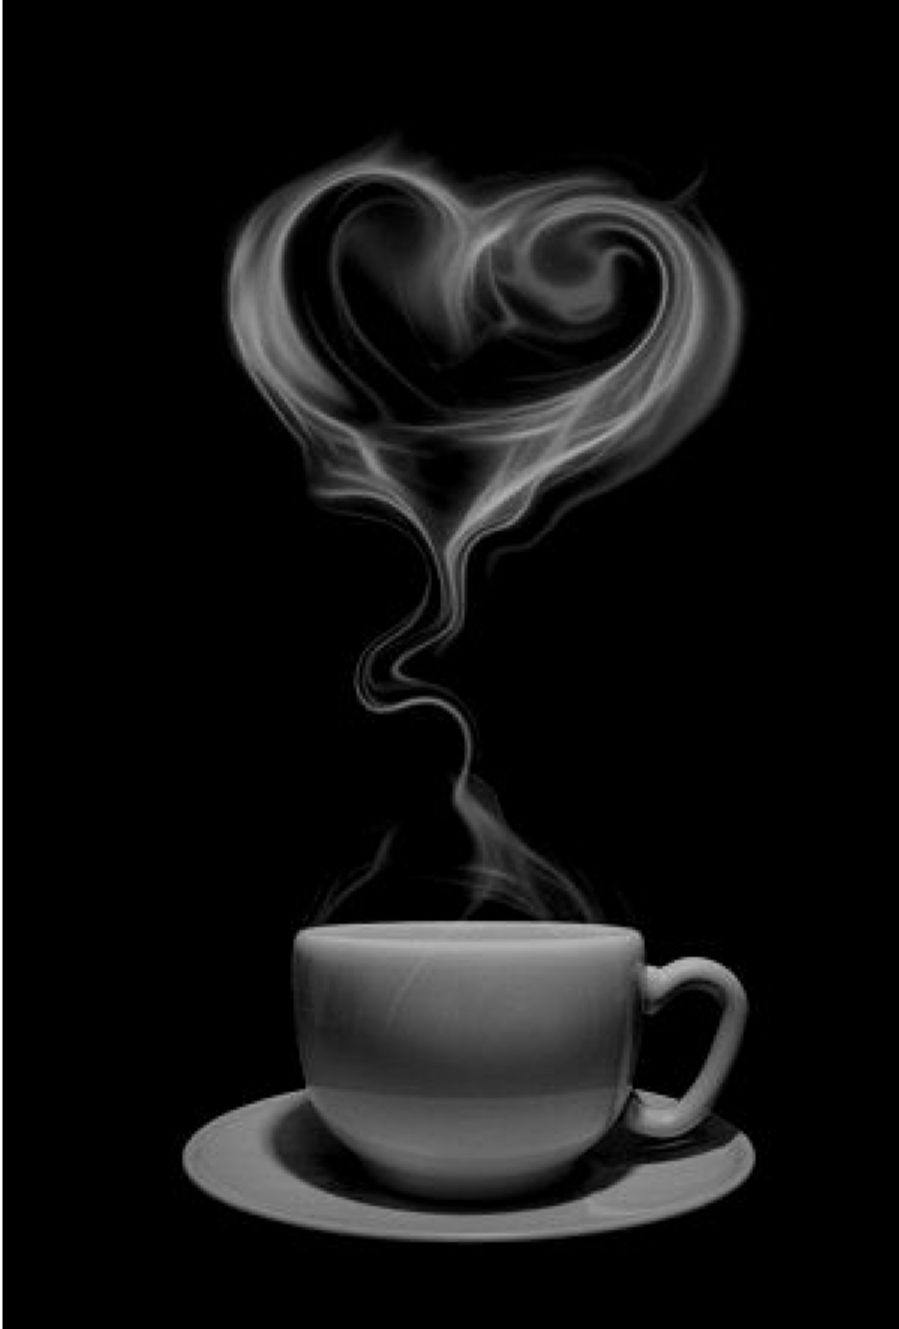 Each DOSE of Happy Coffee releases the power of a million laughs